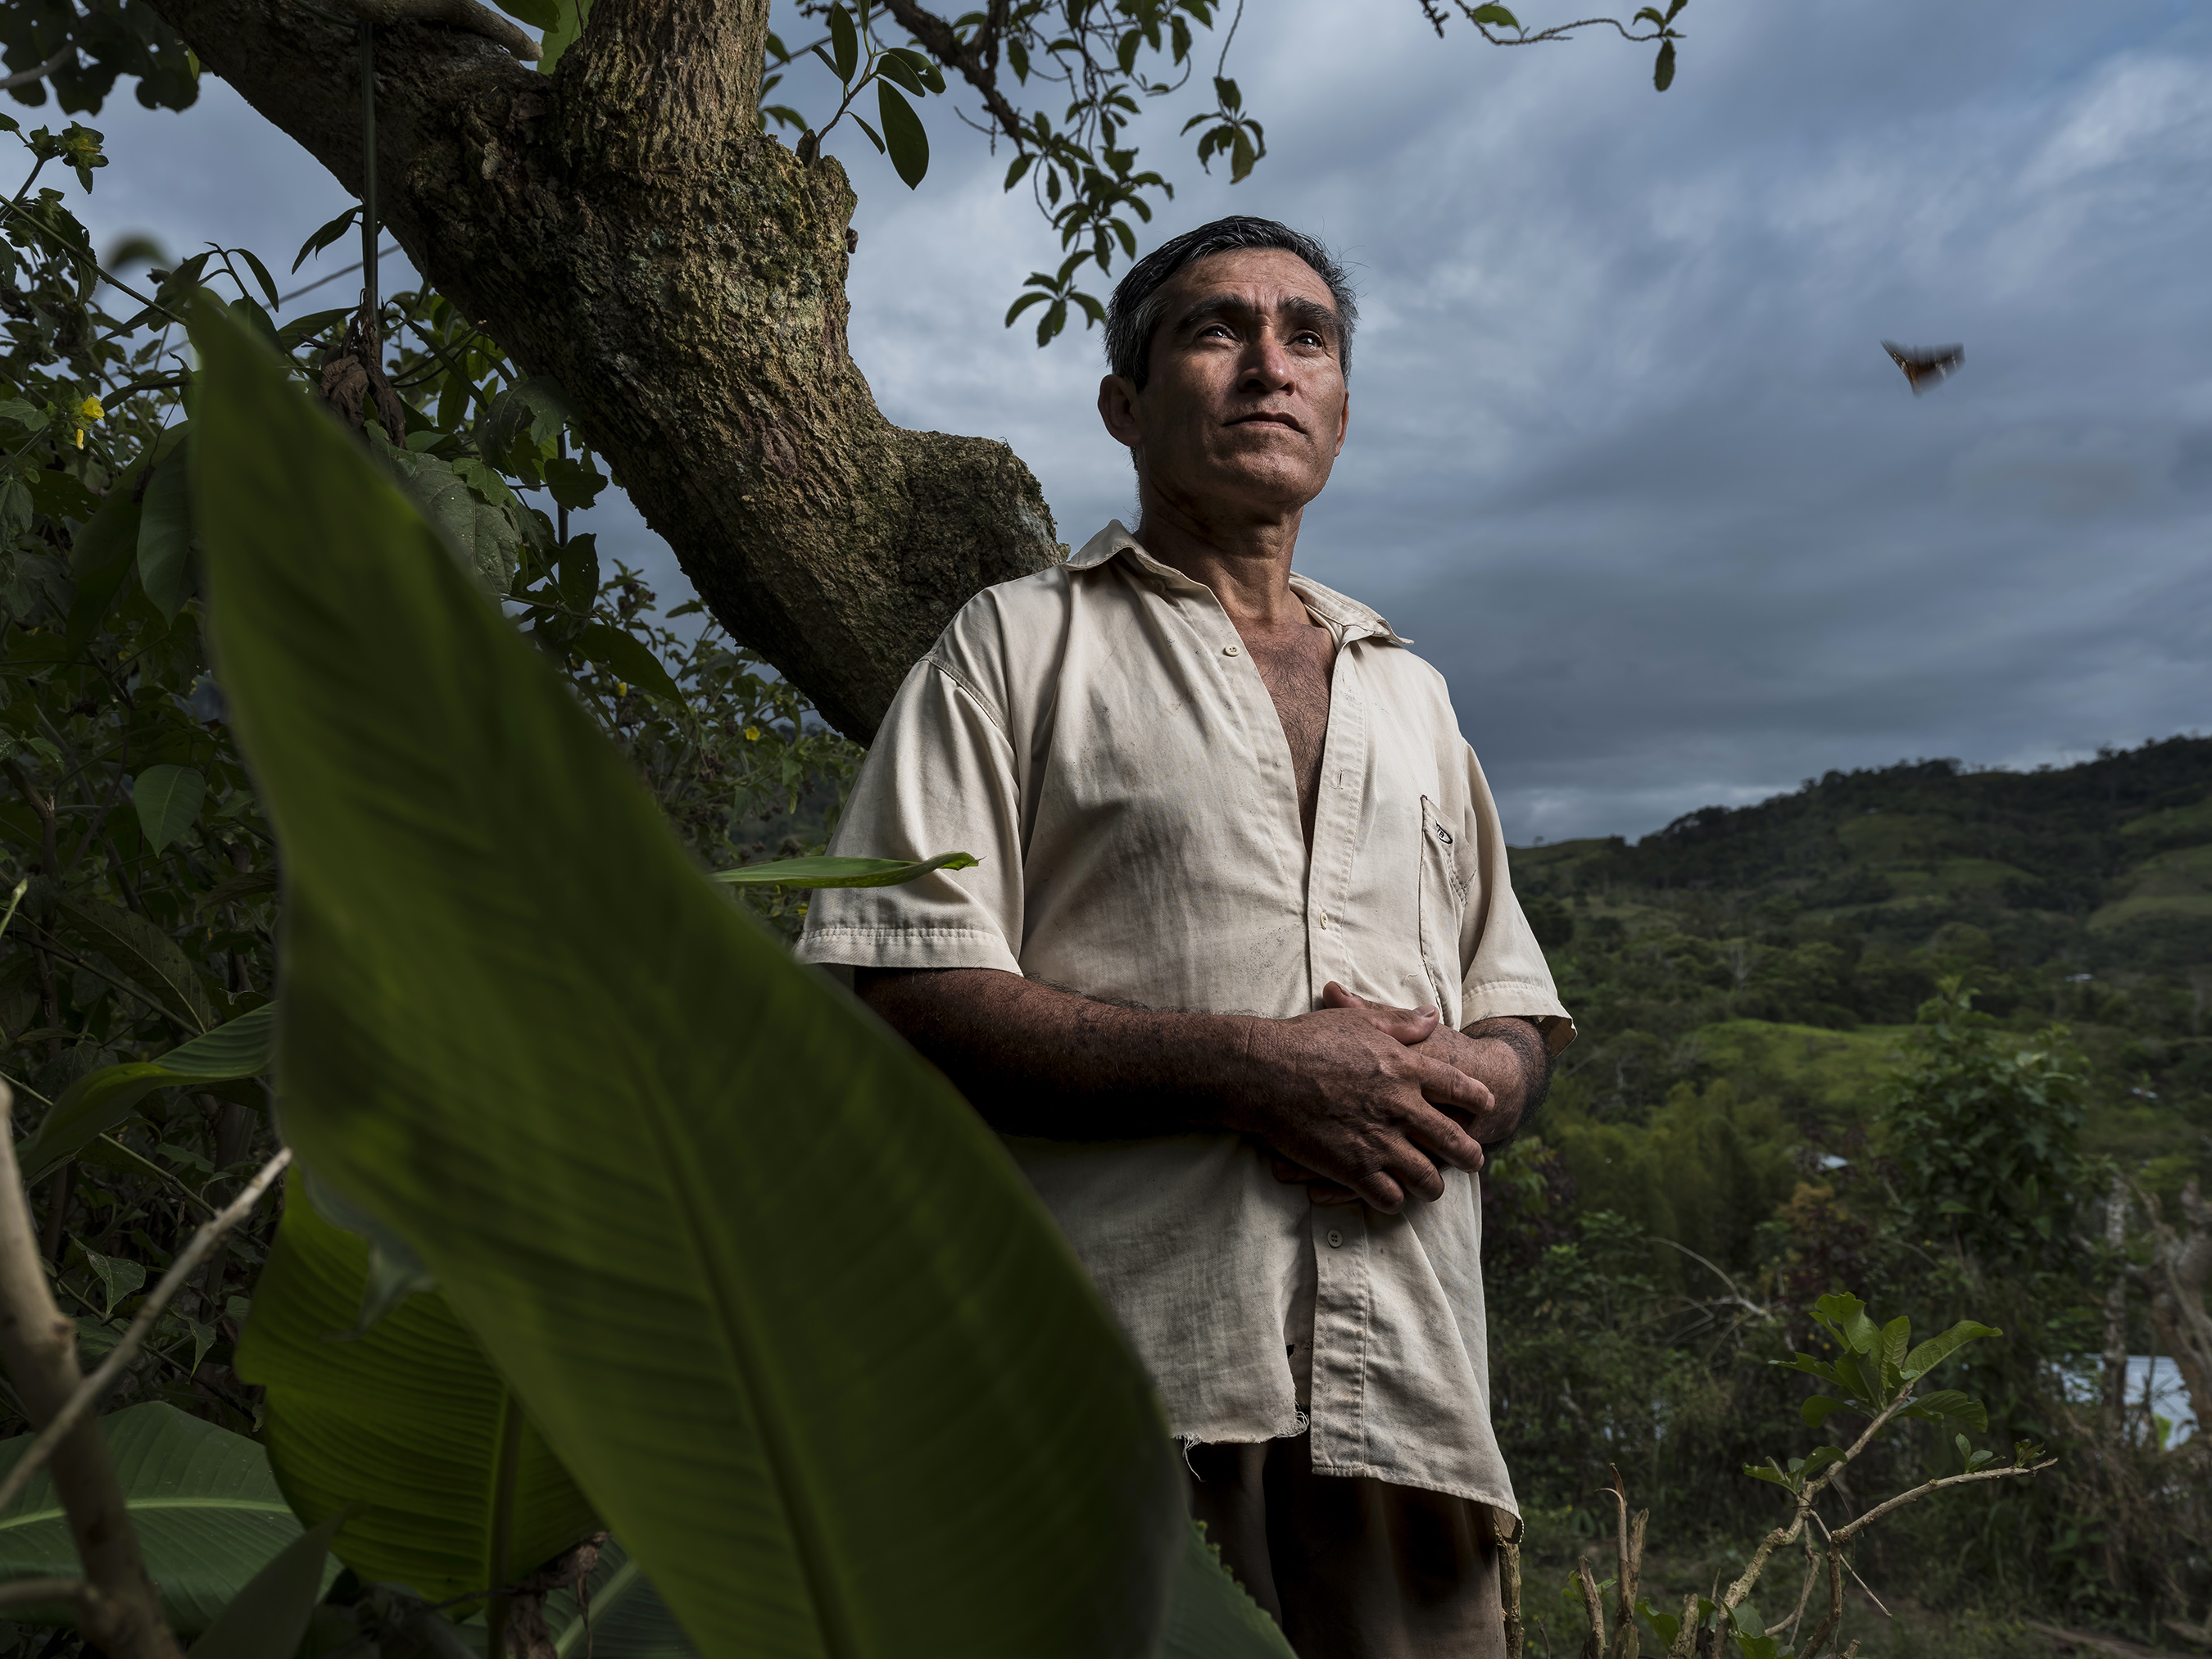 José out in the coffee field where he works